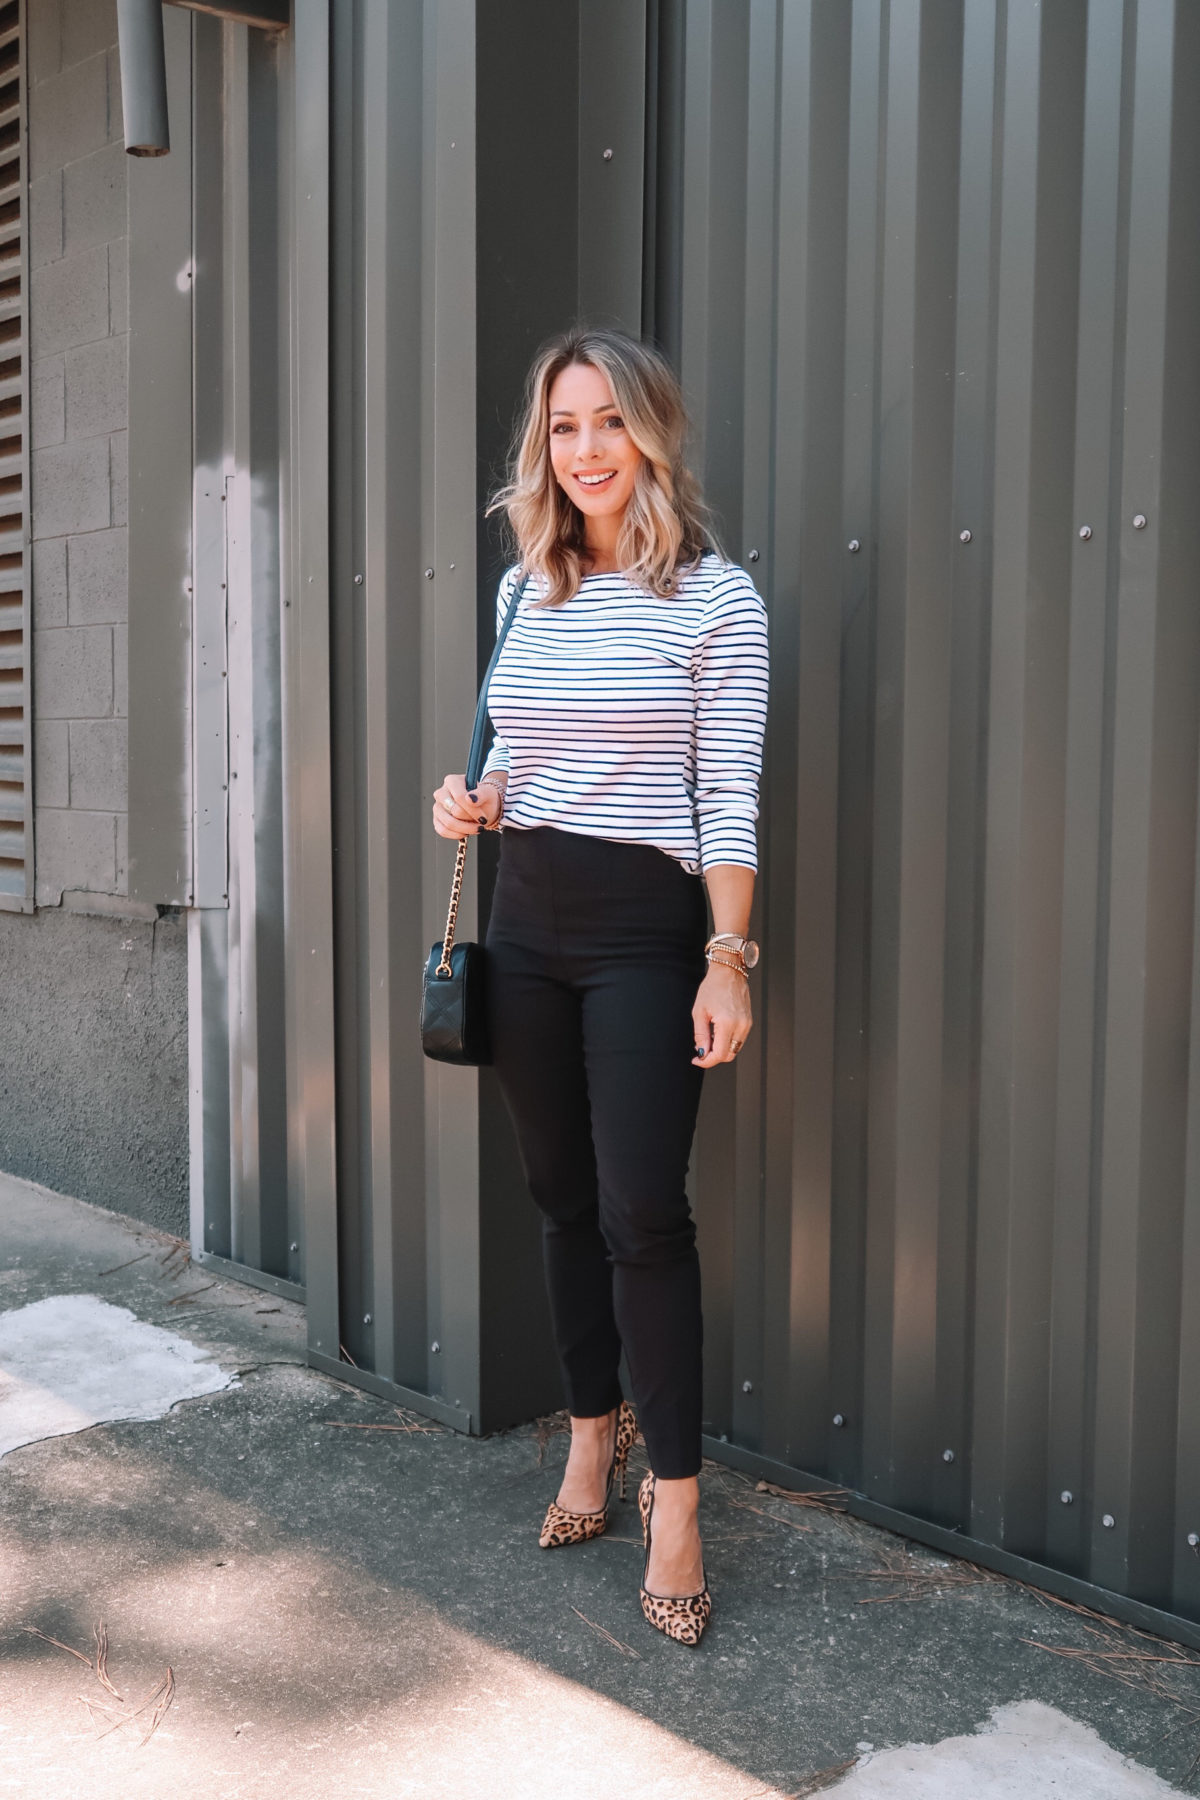 Outfits Lately, Striped Top, Pants, Leopard Heels, Crossbody Bag